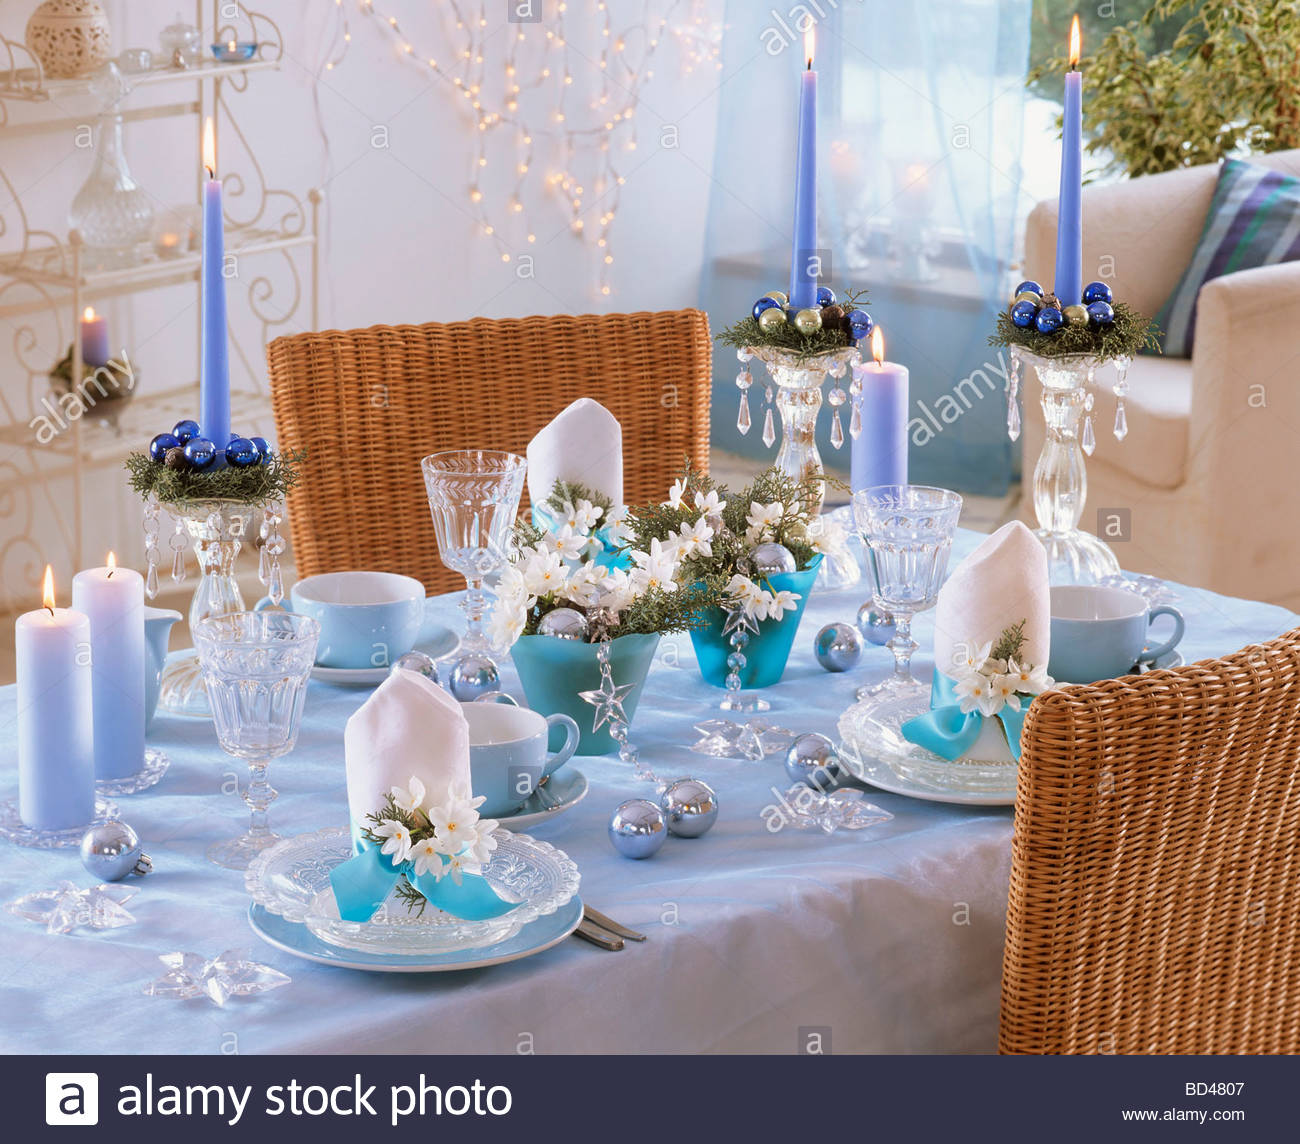 Blue U0026 White Christmas Table Decorations With Tazetta Narcissi